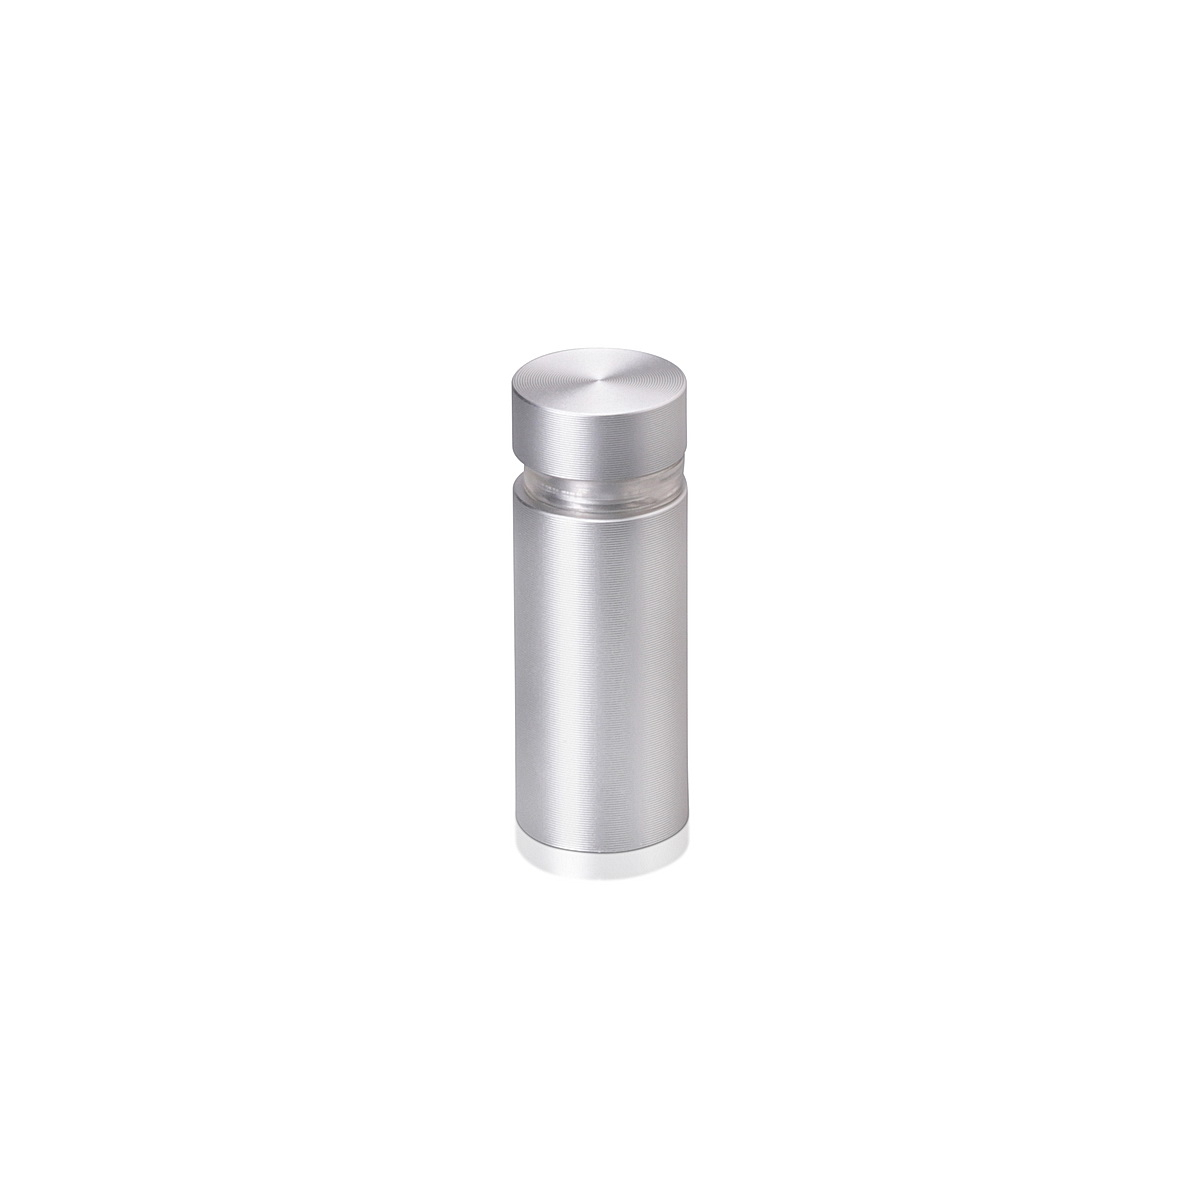 Tamper Proof Aluminum Flat Head Standoffs, Diameter: 1/2'', Standoff: 1'', Clear Anodized Finish